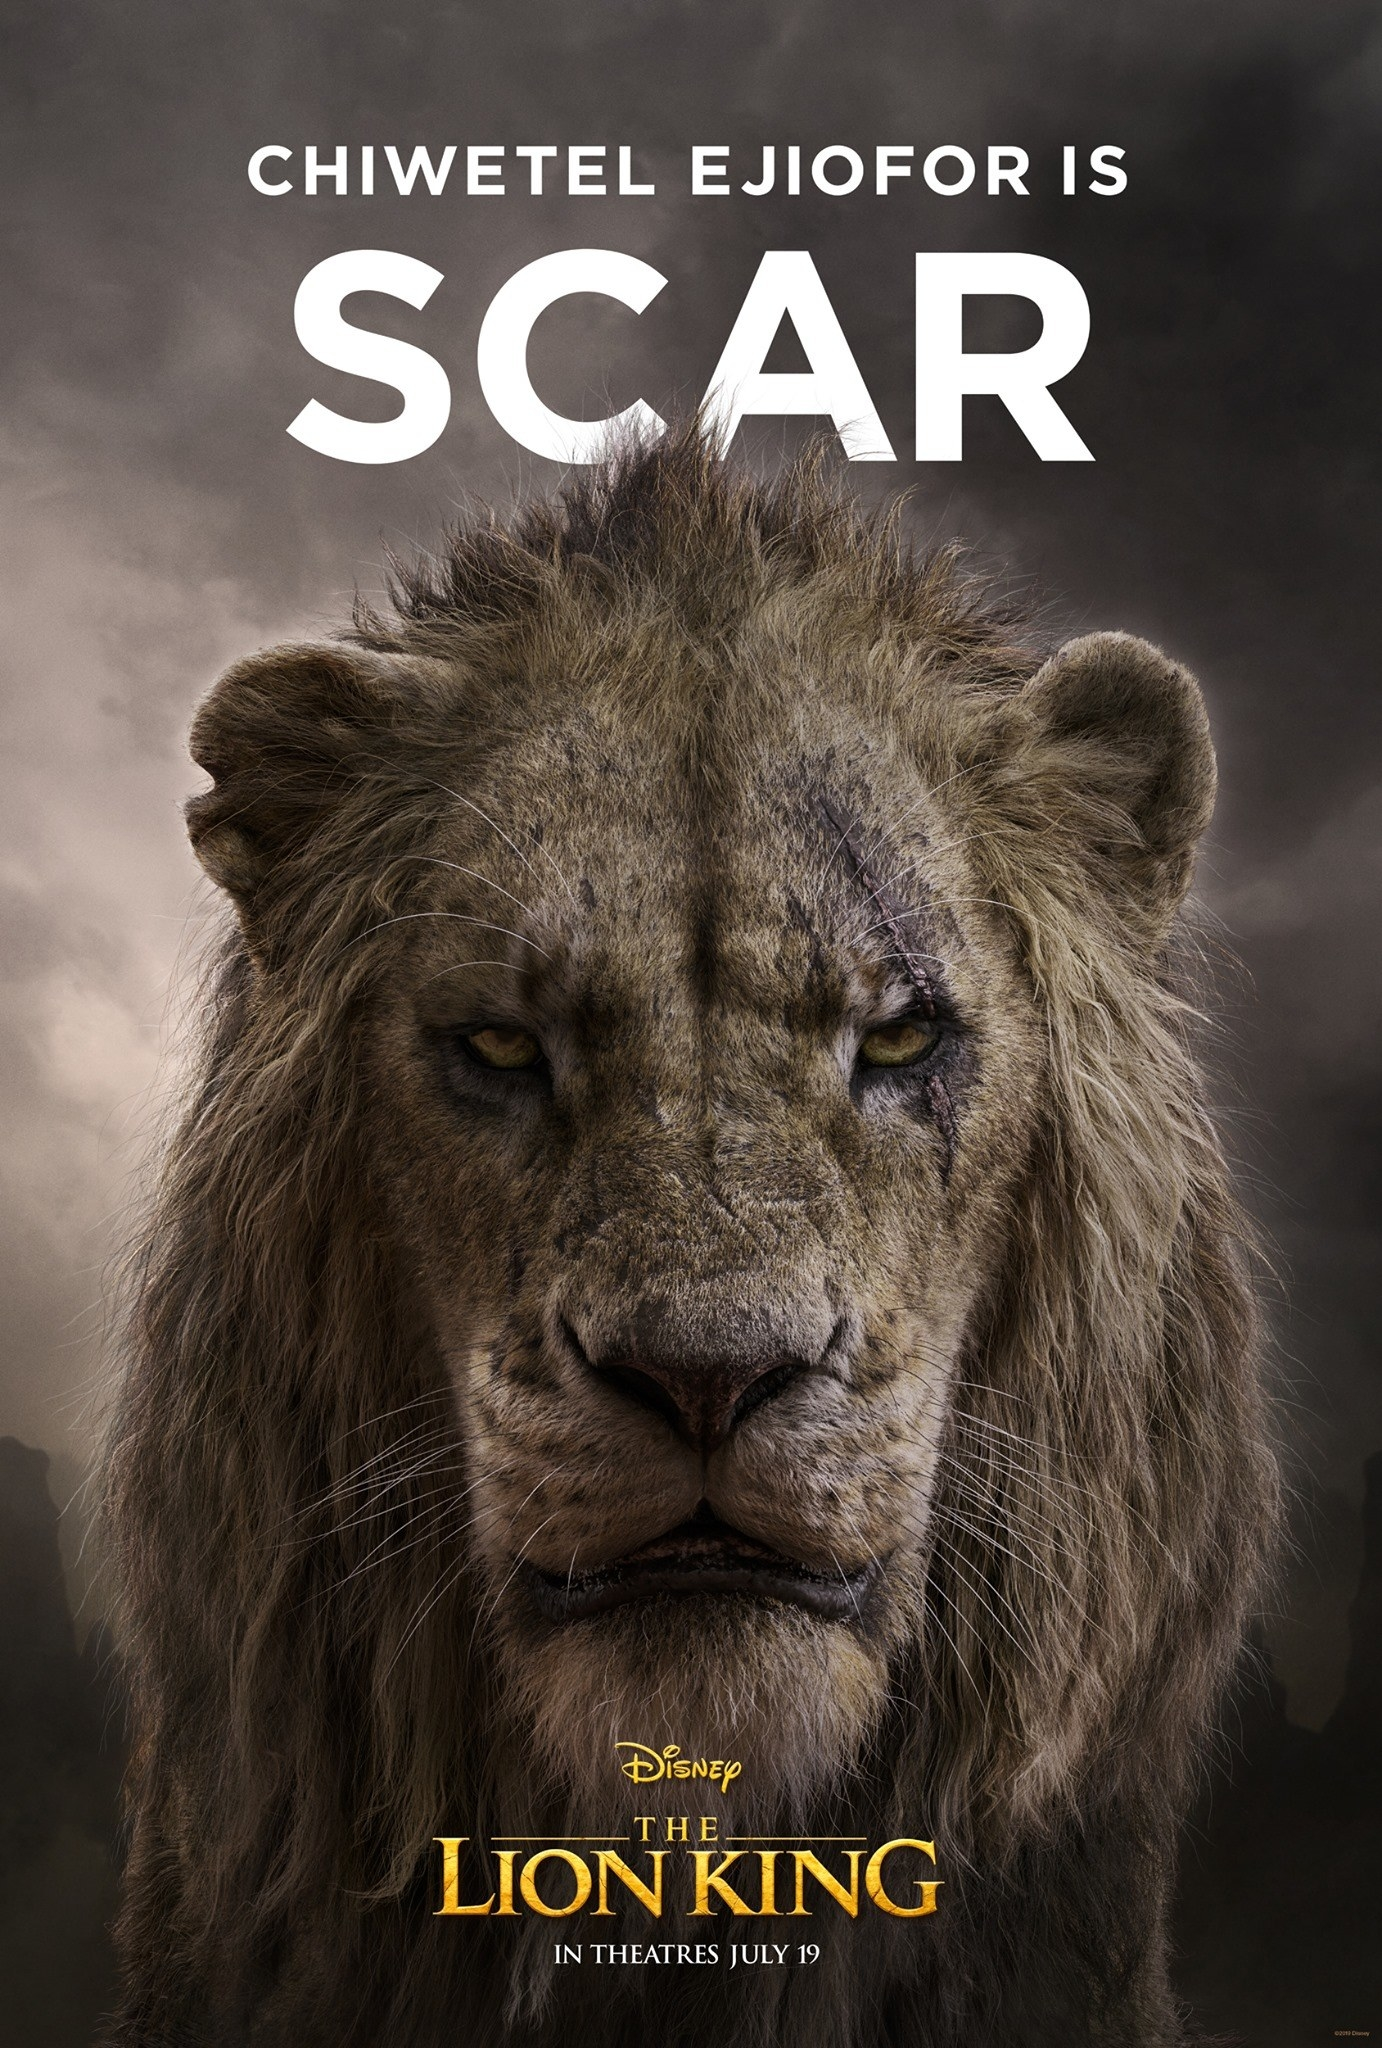 The Lion King Character Posters Are Finally Here